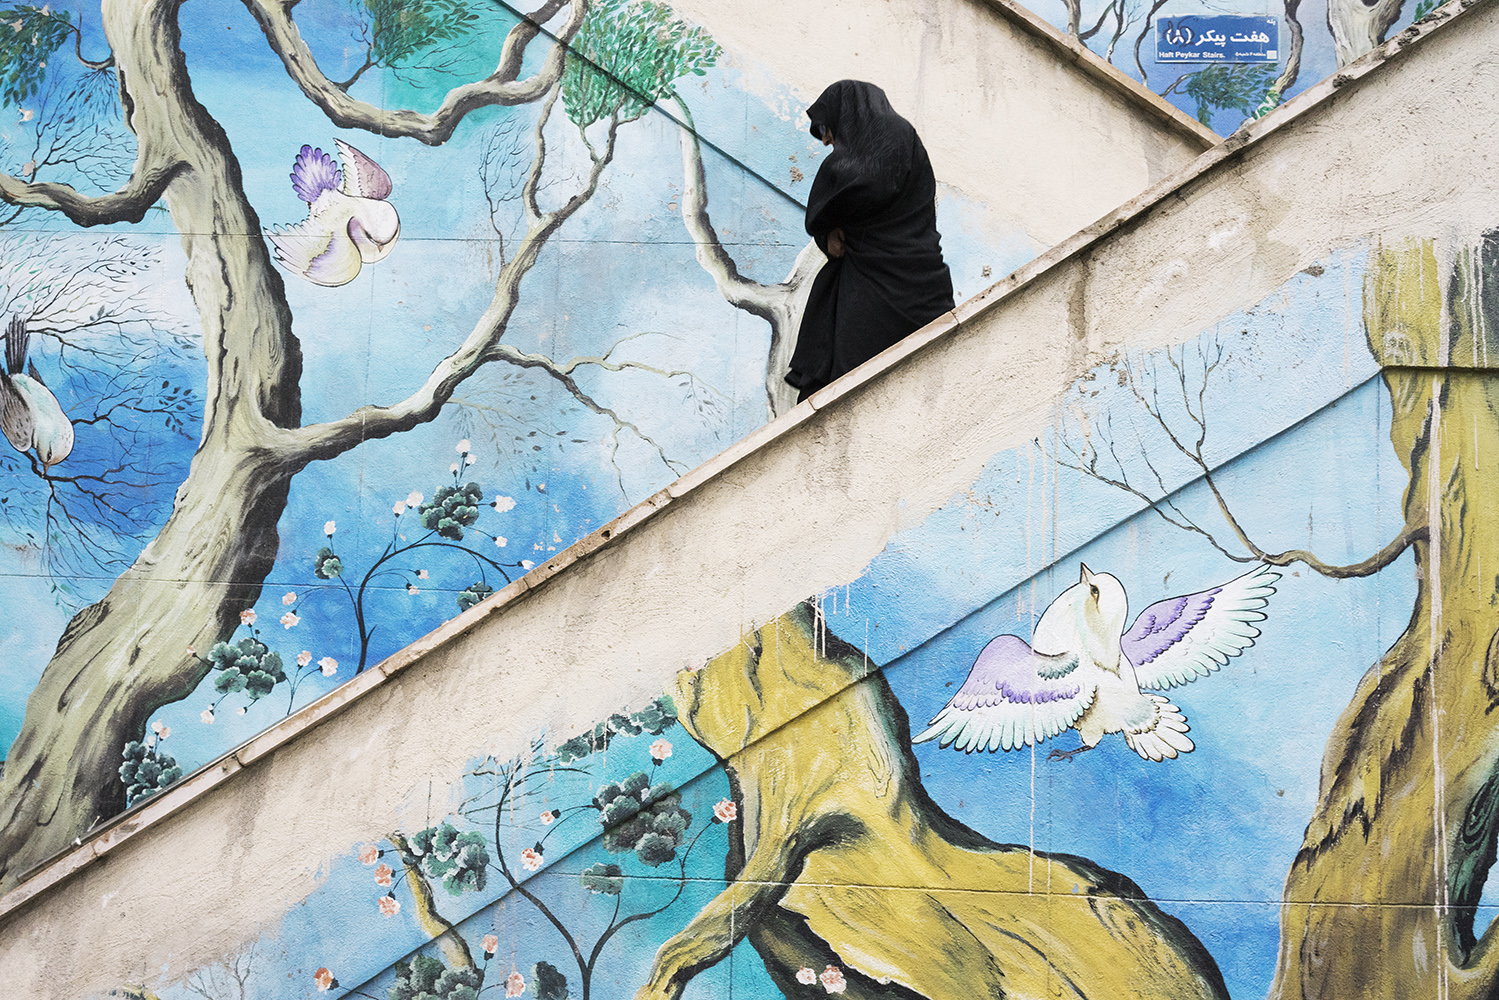 Woman wearing a Chador walking down stairs next to a colorful mural in the North of Tehran. After the islamic revolution in Iran 1979, women are forced to cover their hair wearing a Islamic hijab in public places or they can be sentenced to ten days, and up to two months imprisonment, according the the Islamic Penal Code.